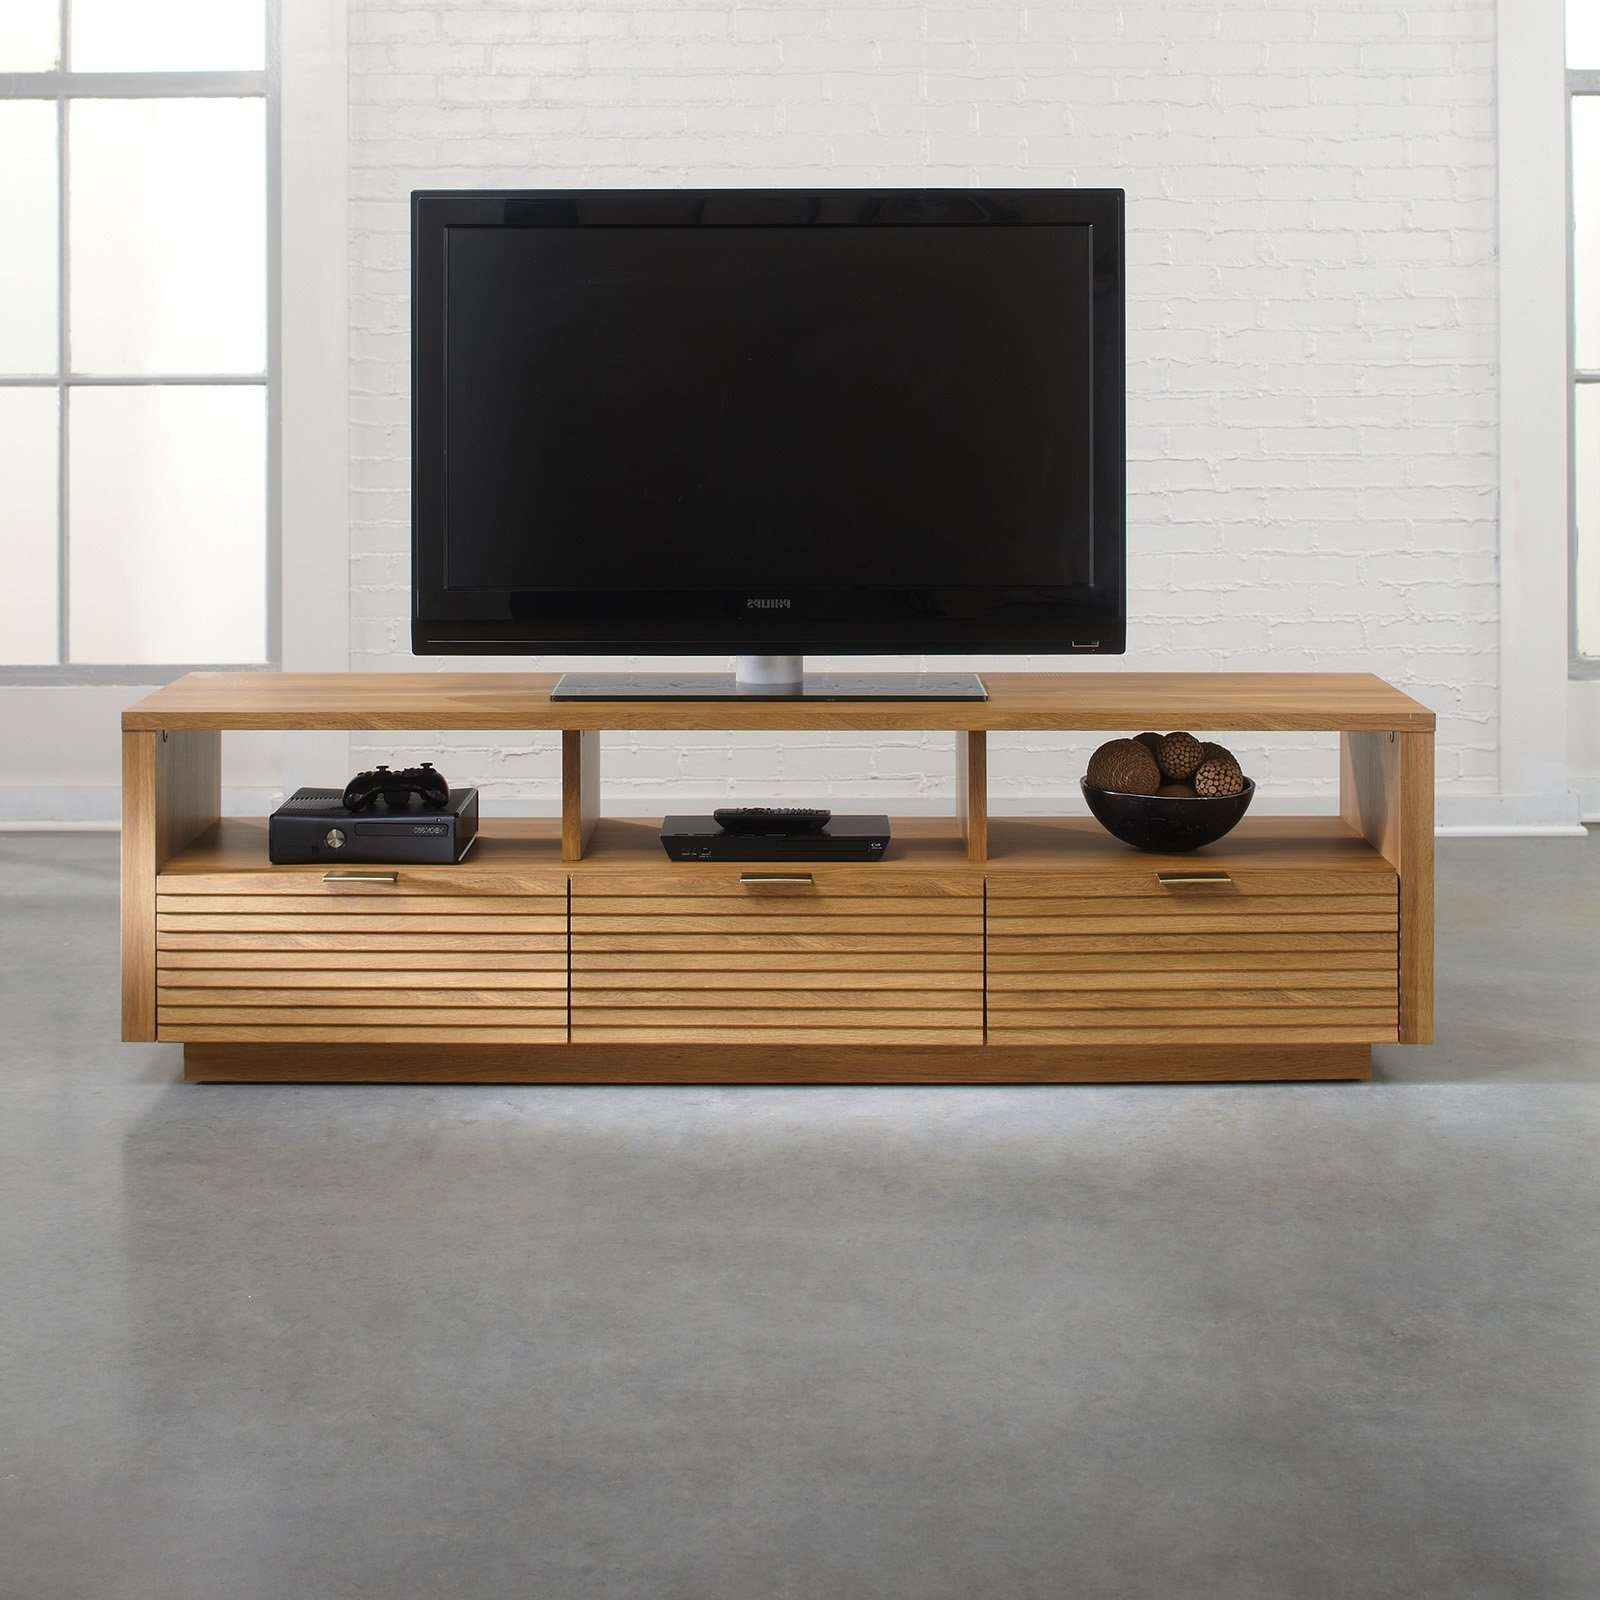 Sauder Soft Modern Entertainment Credenza – Pale Oak | Hayneedle Throughout Modern Oak Tv Stands (View 11 of 15)